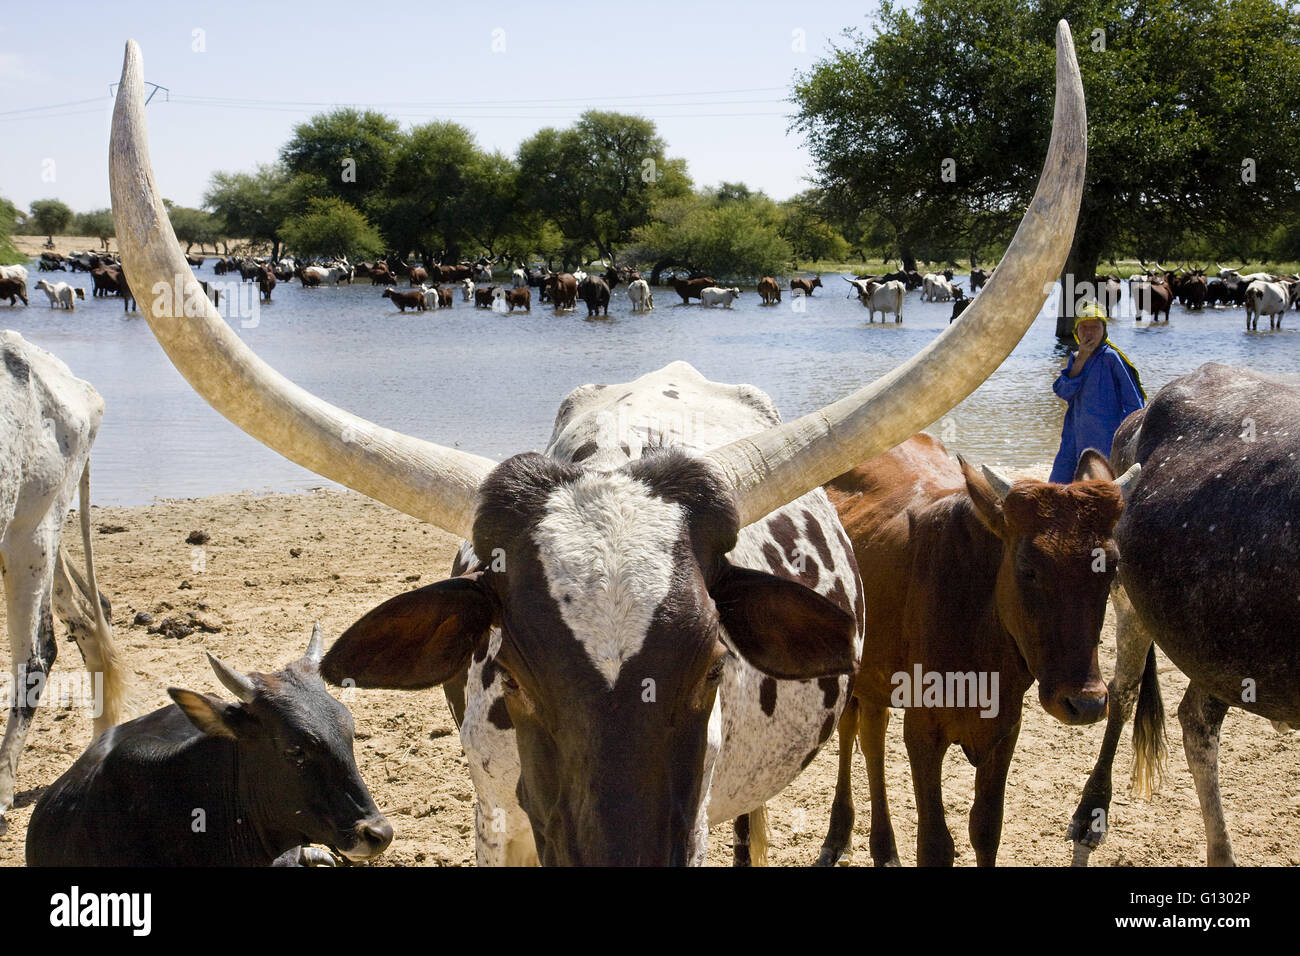 Cattle herd, Ankole cows, in Komadougu river near Chad lake. Niger - Stock Image